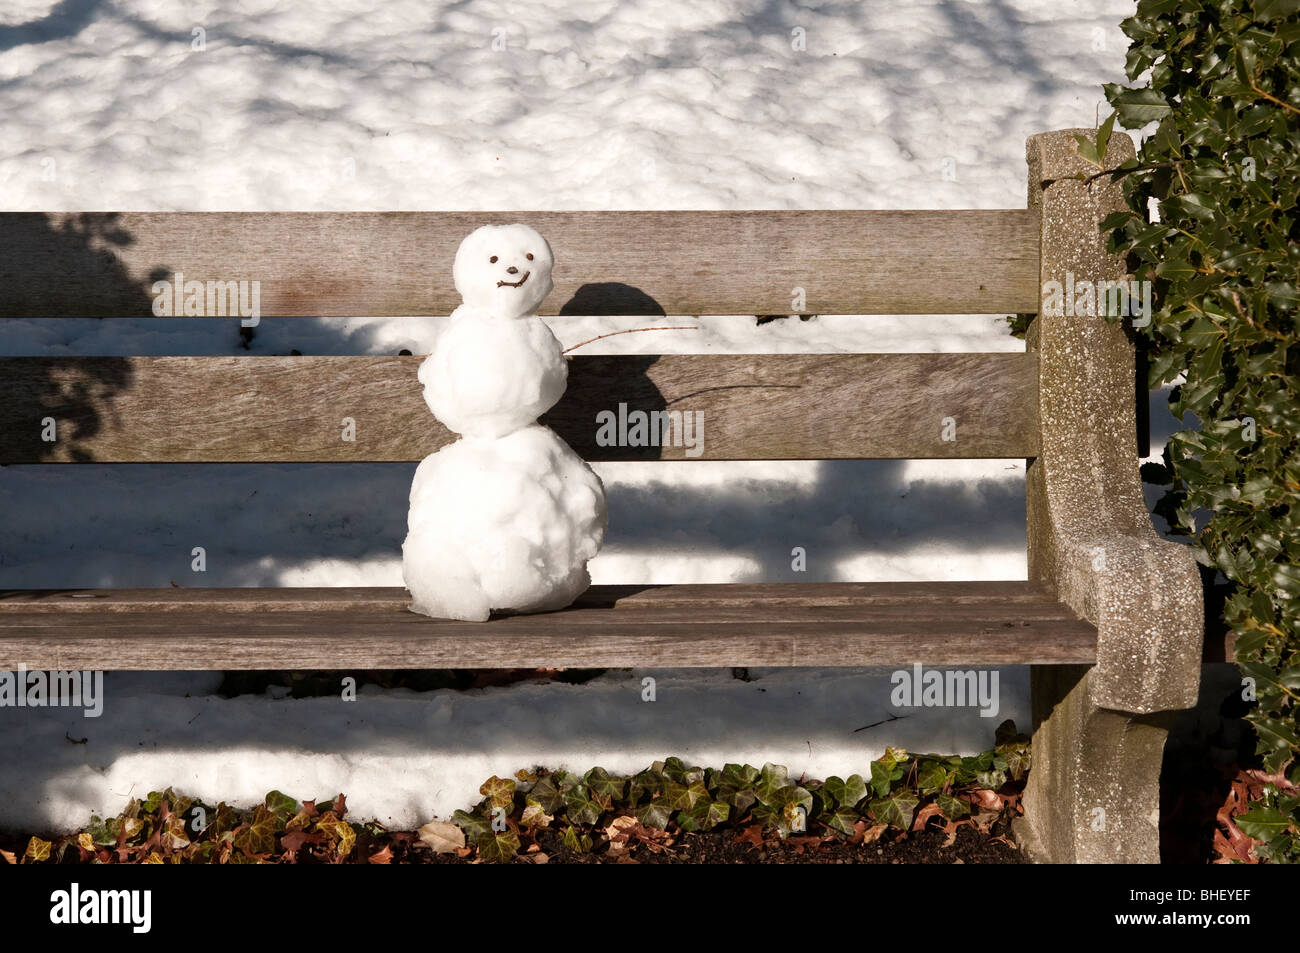 Snowman on a park bench in Brooklyn - Stock Image